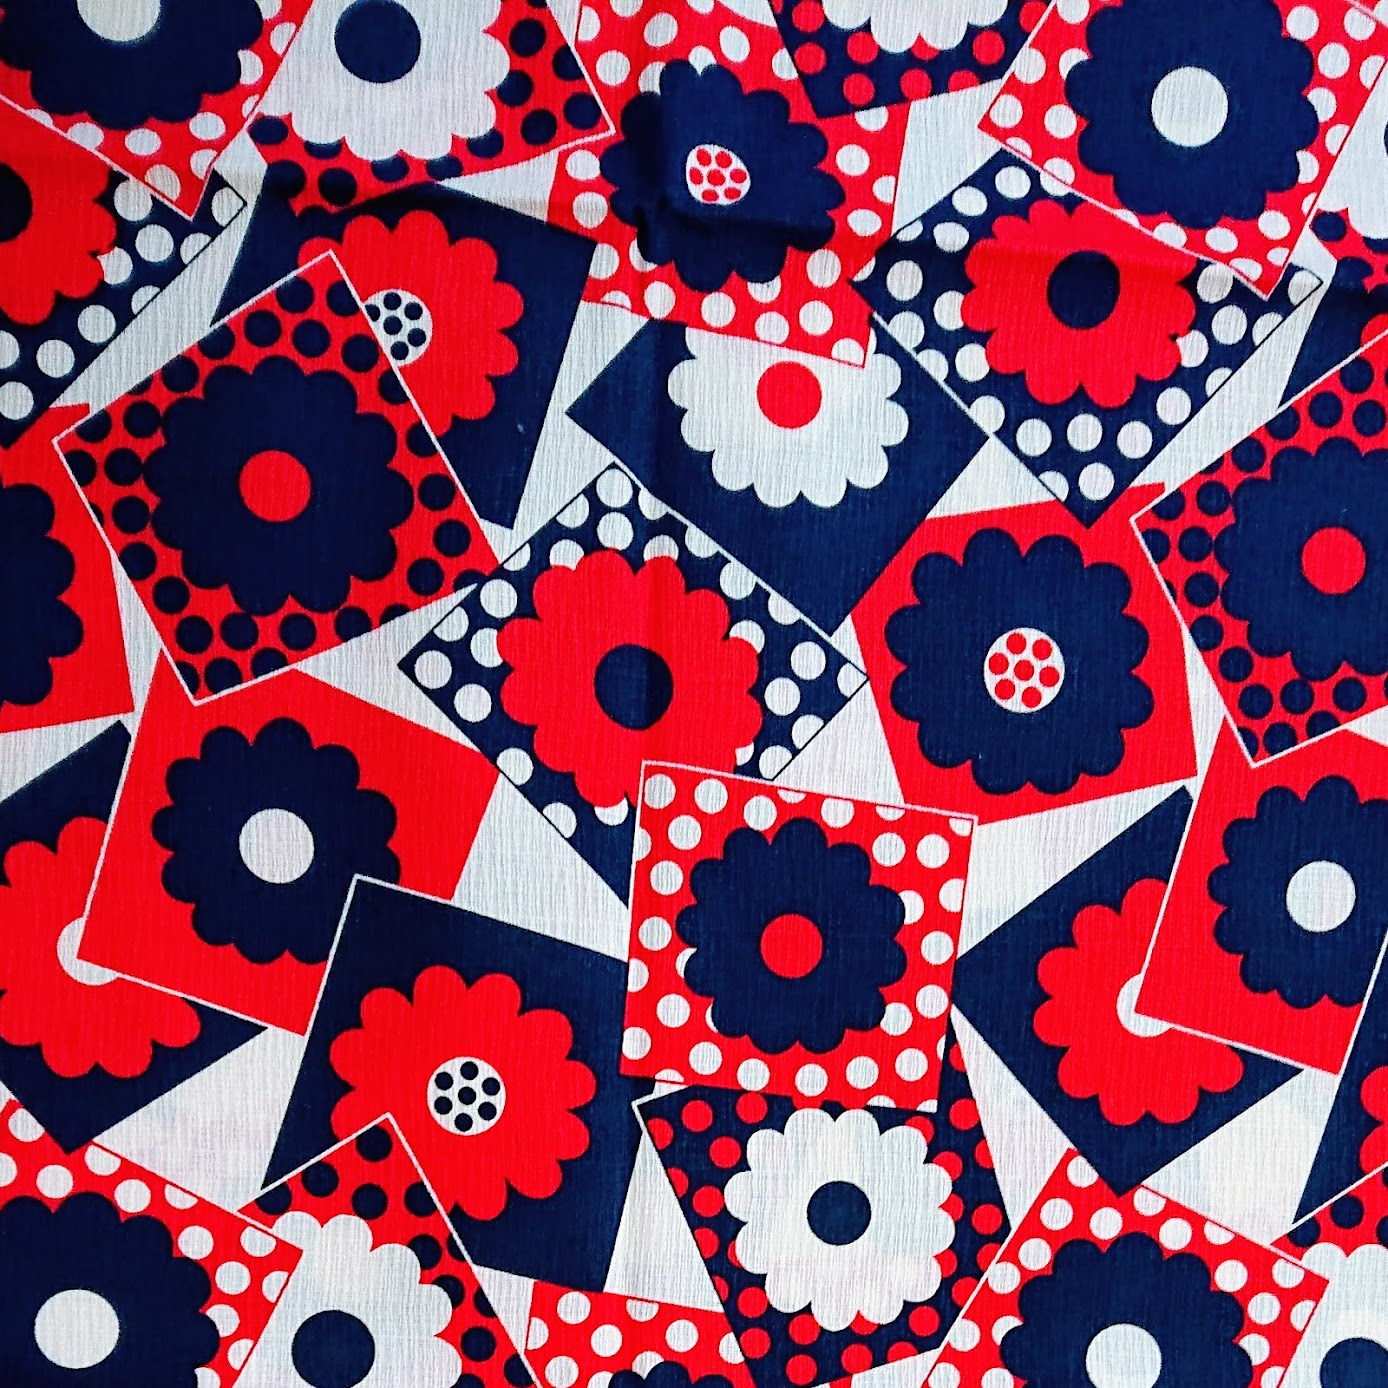 Japanese Floral Cotton Print Fabric destined for Every Body Tunic - Fafafoom Studio